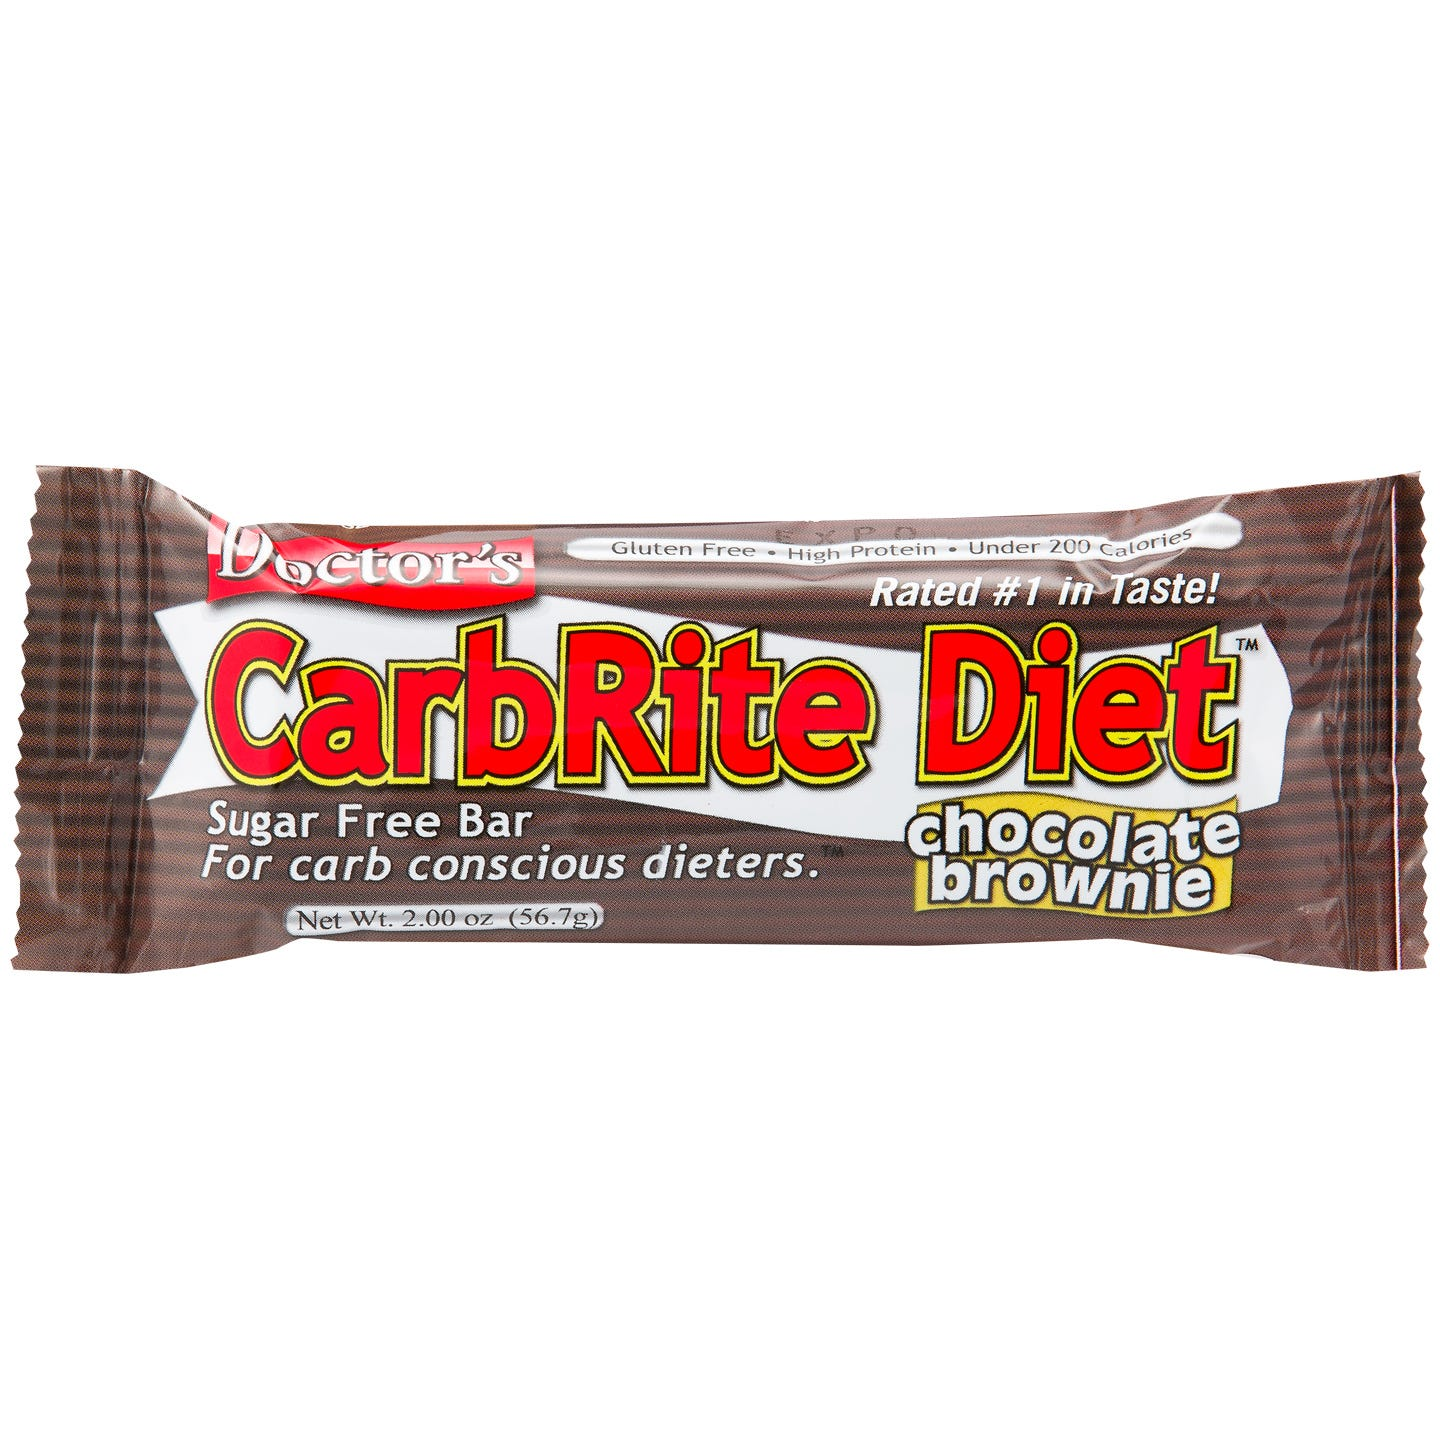 Doctor's CarbRite Diet Protein Bars - Chocolate Brownie